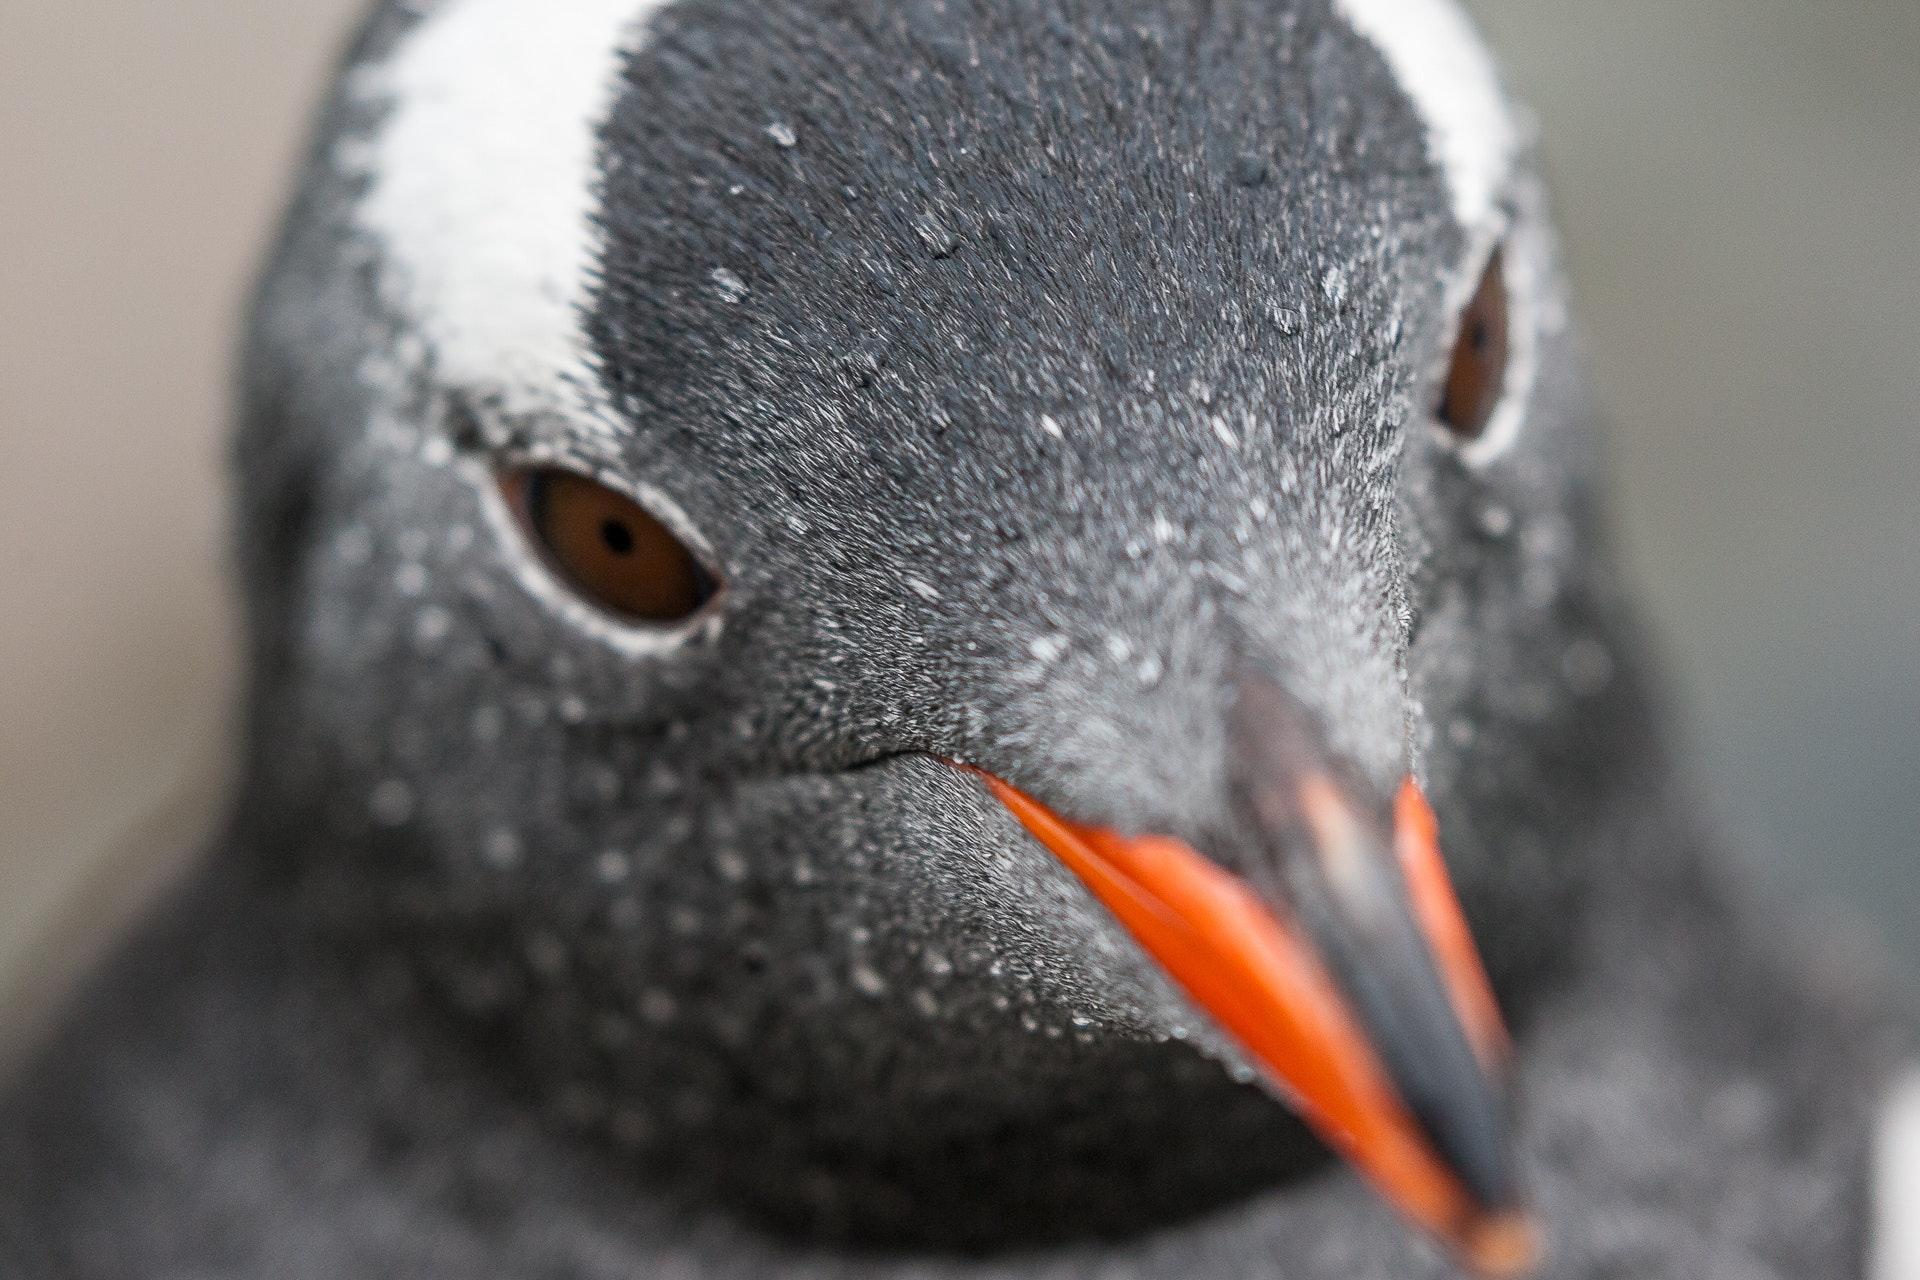 Extreme Closeup of Gentoo